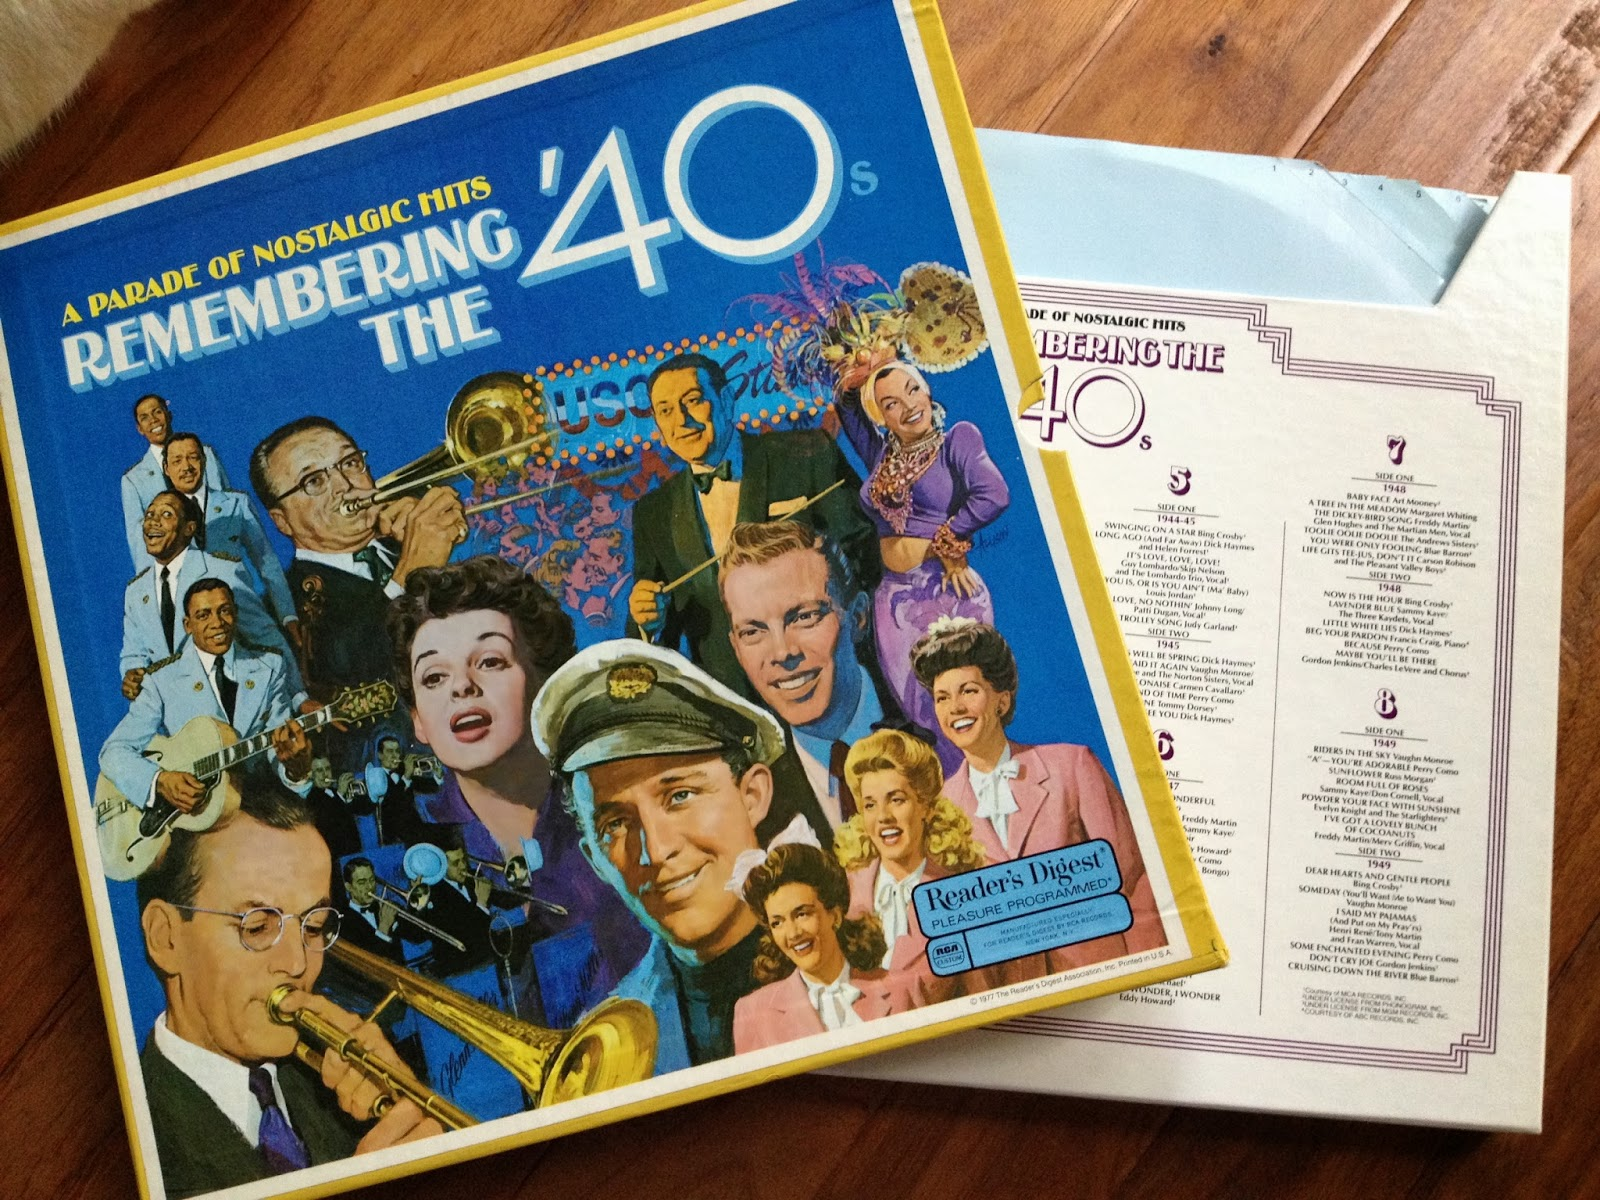 LP:  Remembering the 40s